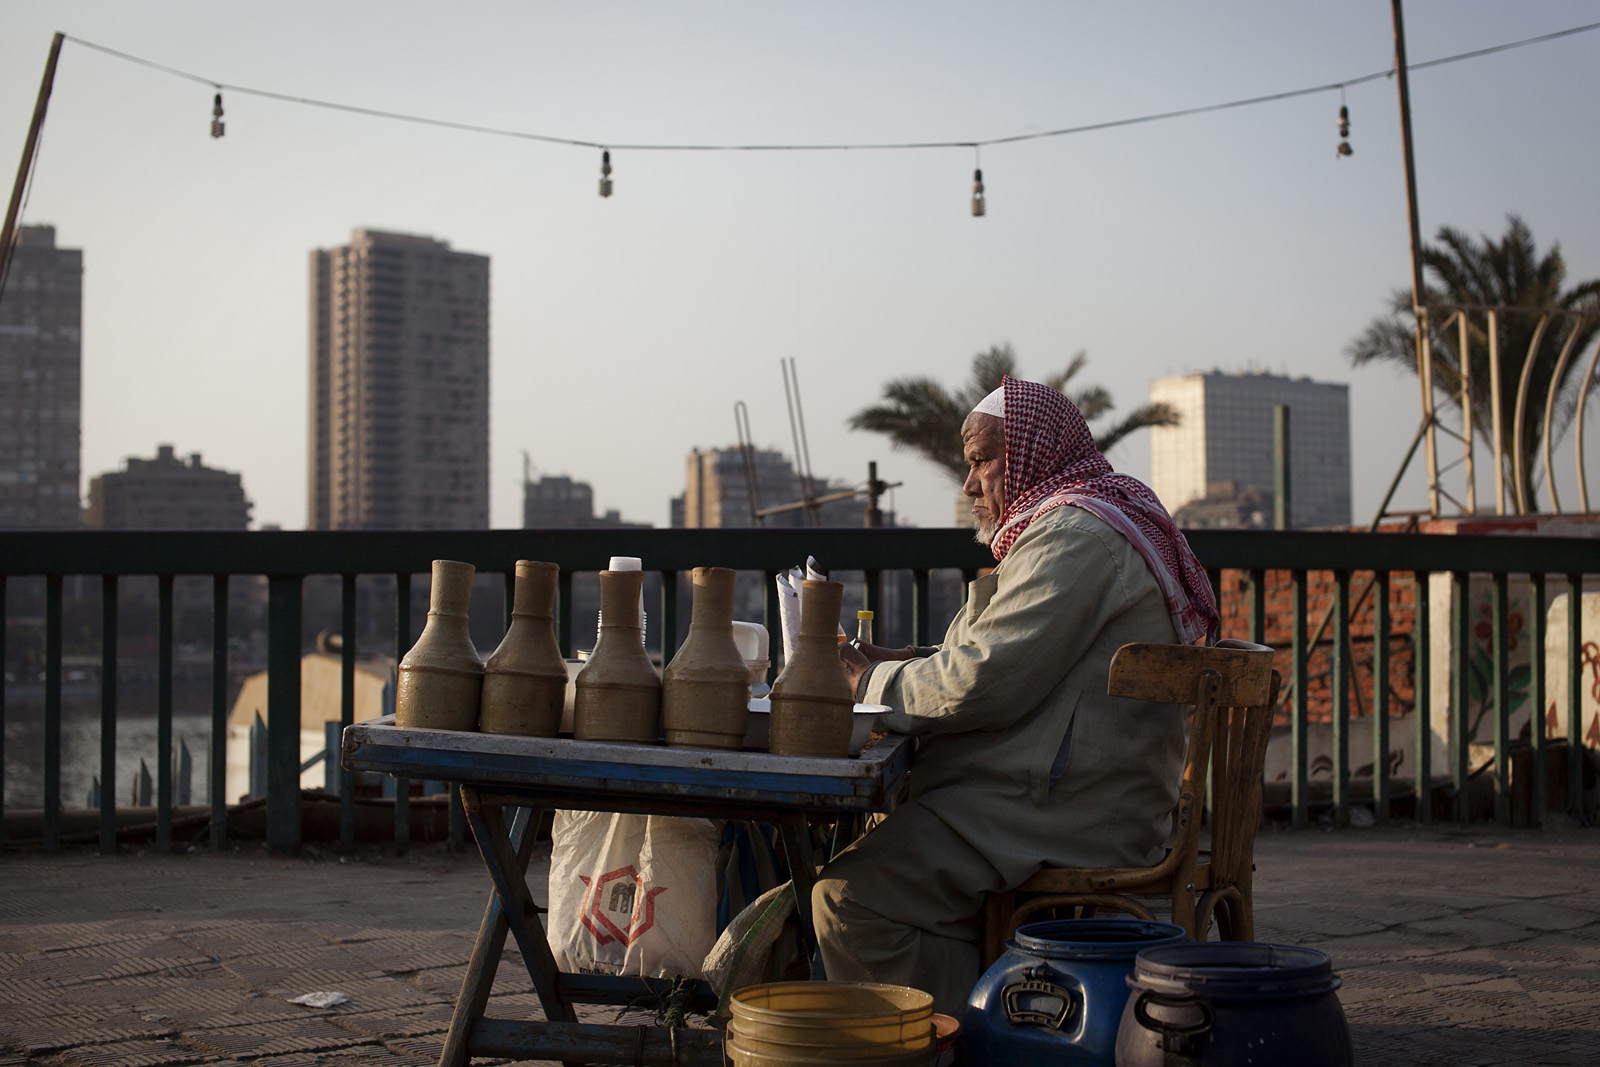 A local sells homemade pots at his roadside stall beside the Nile river.